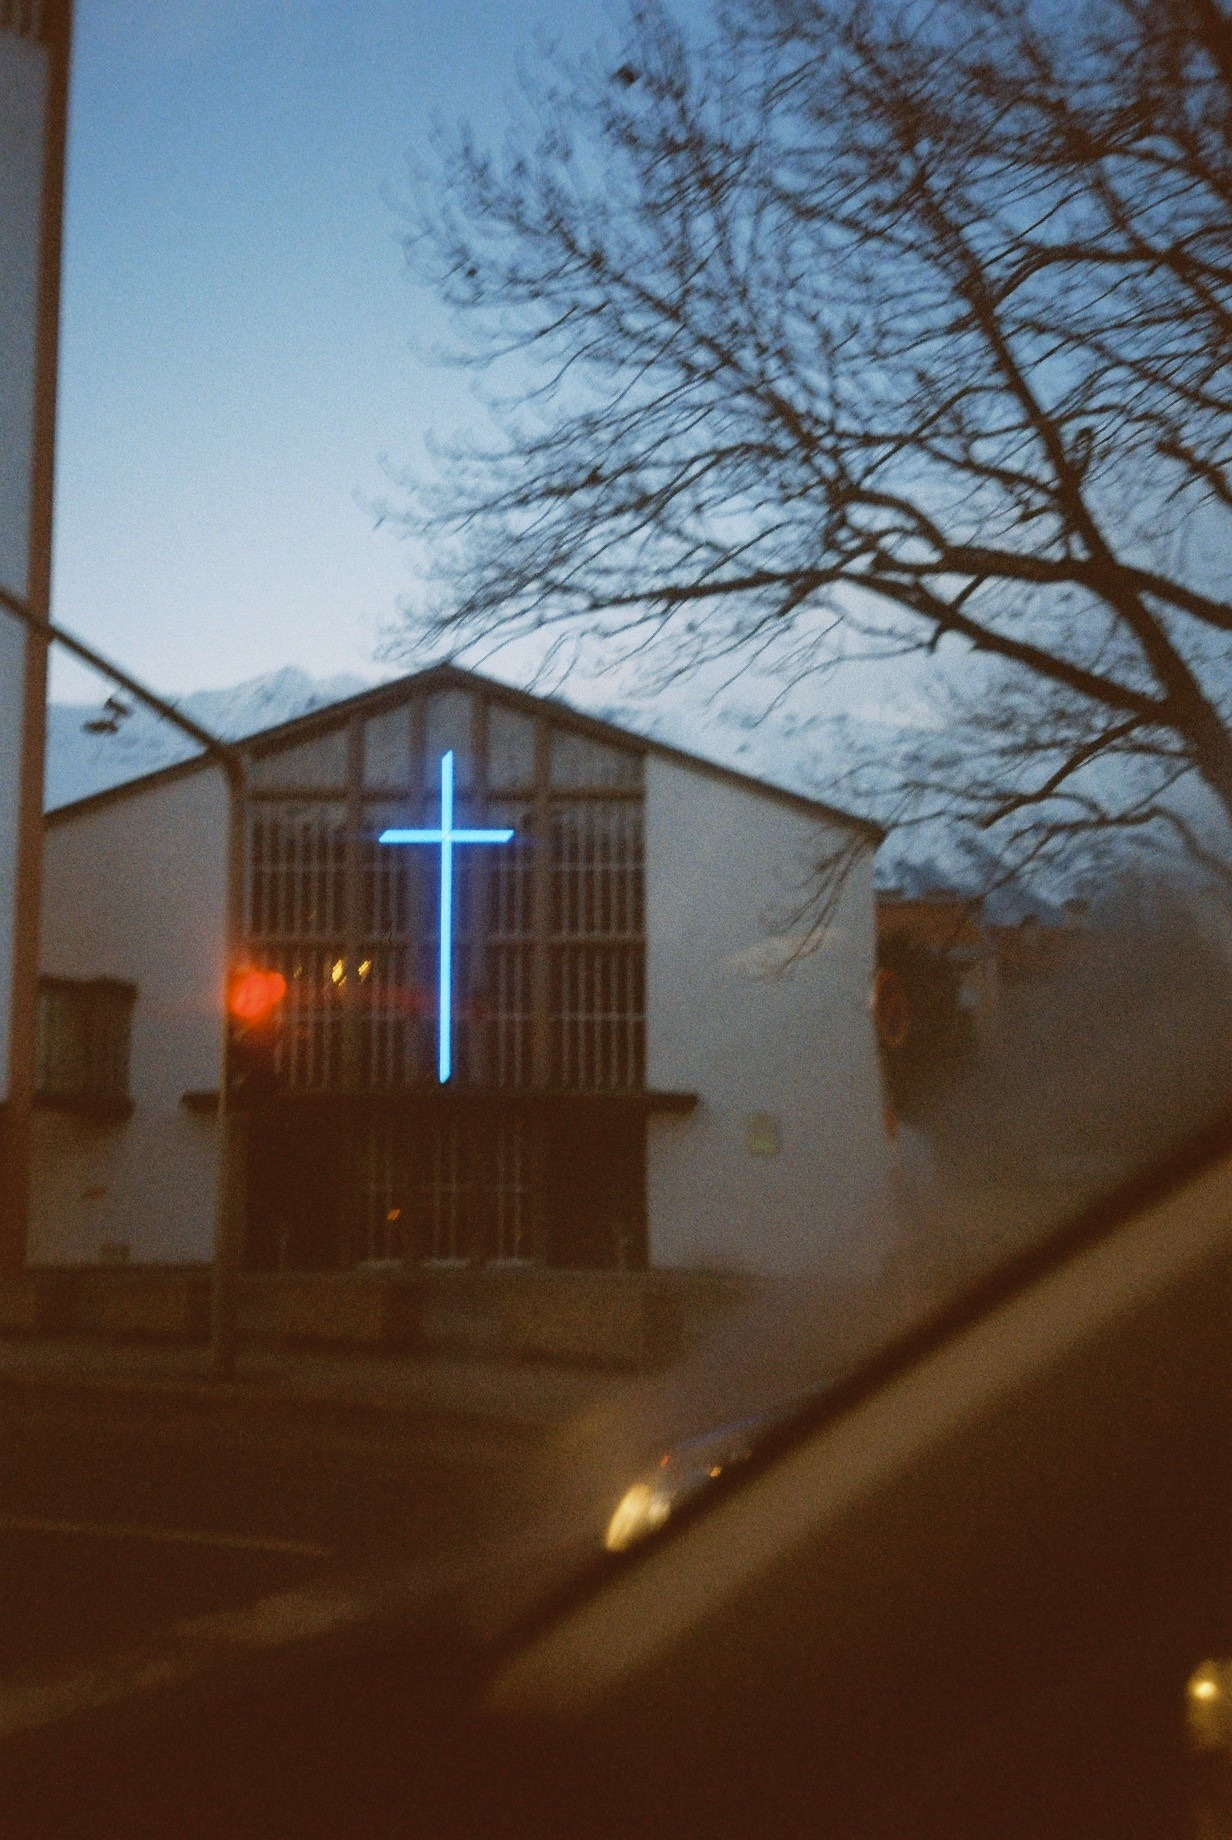 Neon Cross, Tirol Jan. 2013